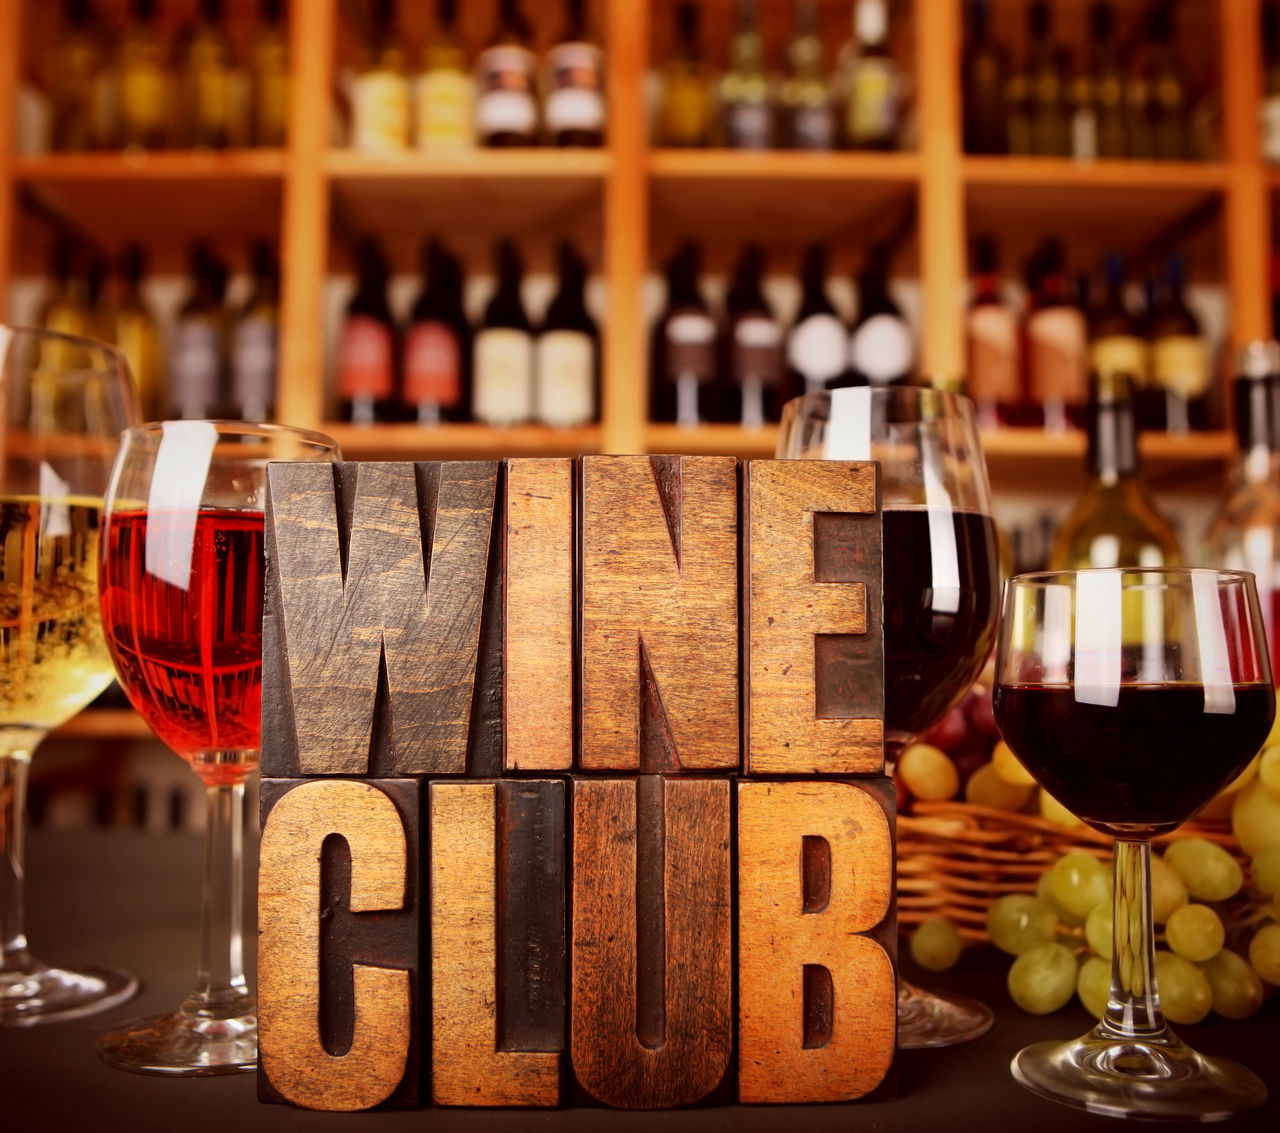 Wine Club Alcohol Bottle Bottle Shop Cellar Drink Drinking Glass Group Of Objects Indoors  Large Group Of Objects No People Red Red Wine Wine Wine Bottle Wine Cellar Wine Club Wine Rack Wineglass Winery Winetasting